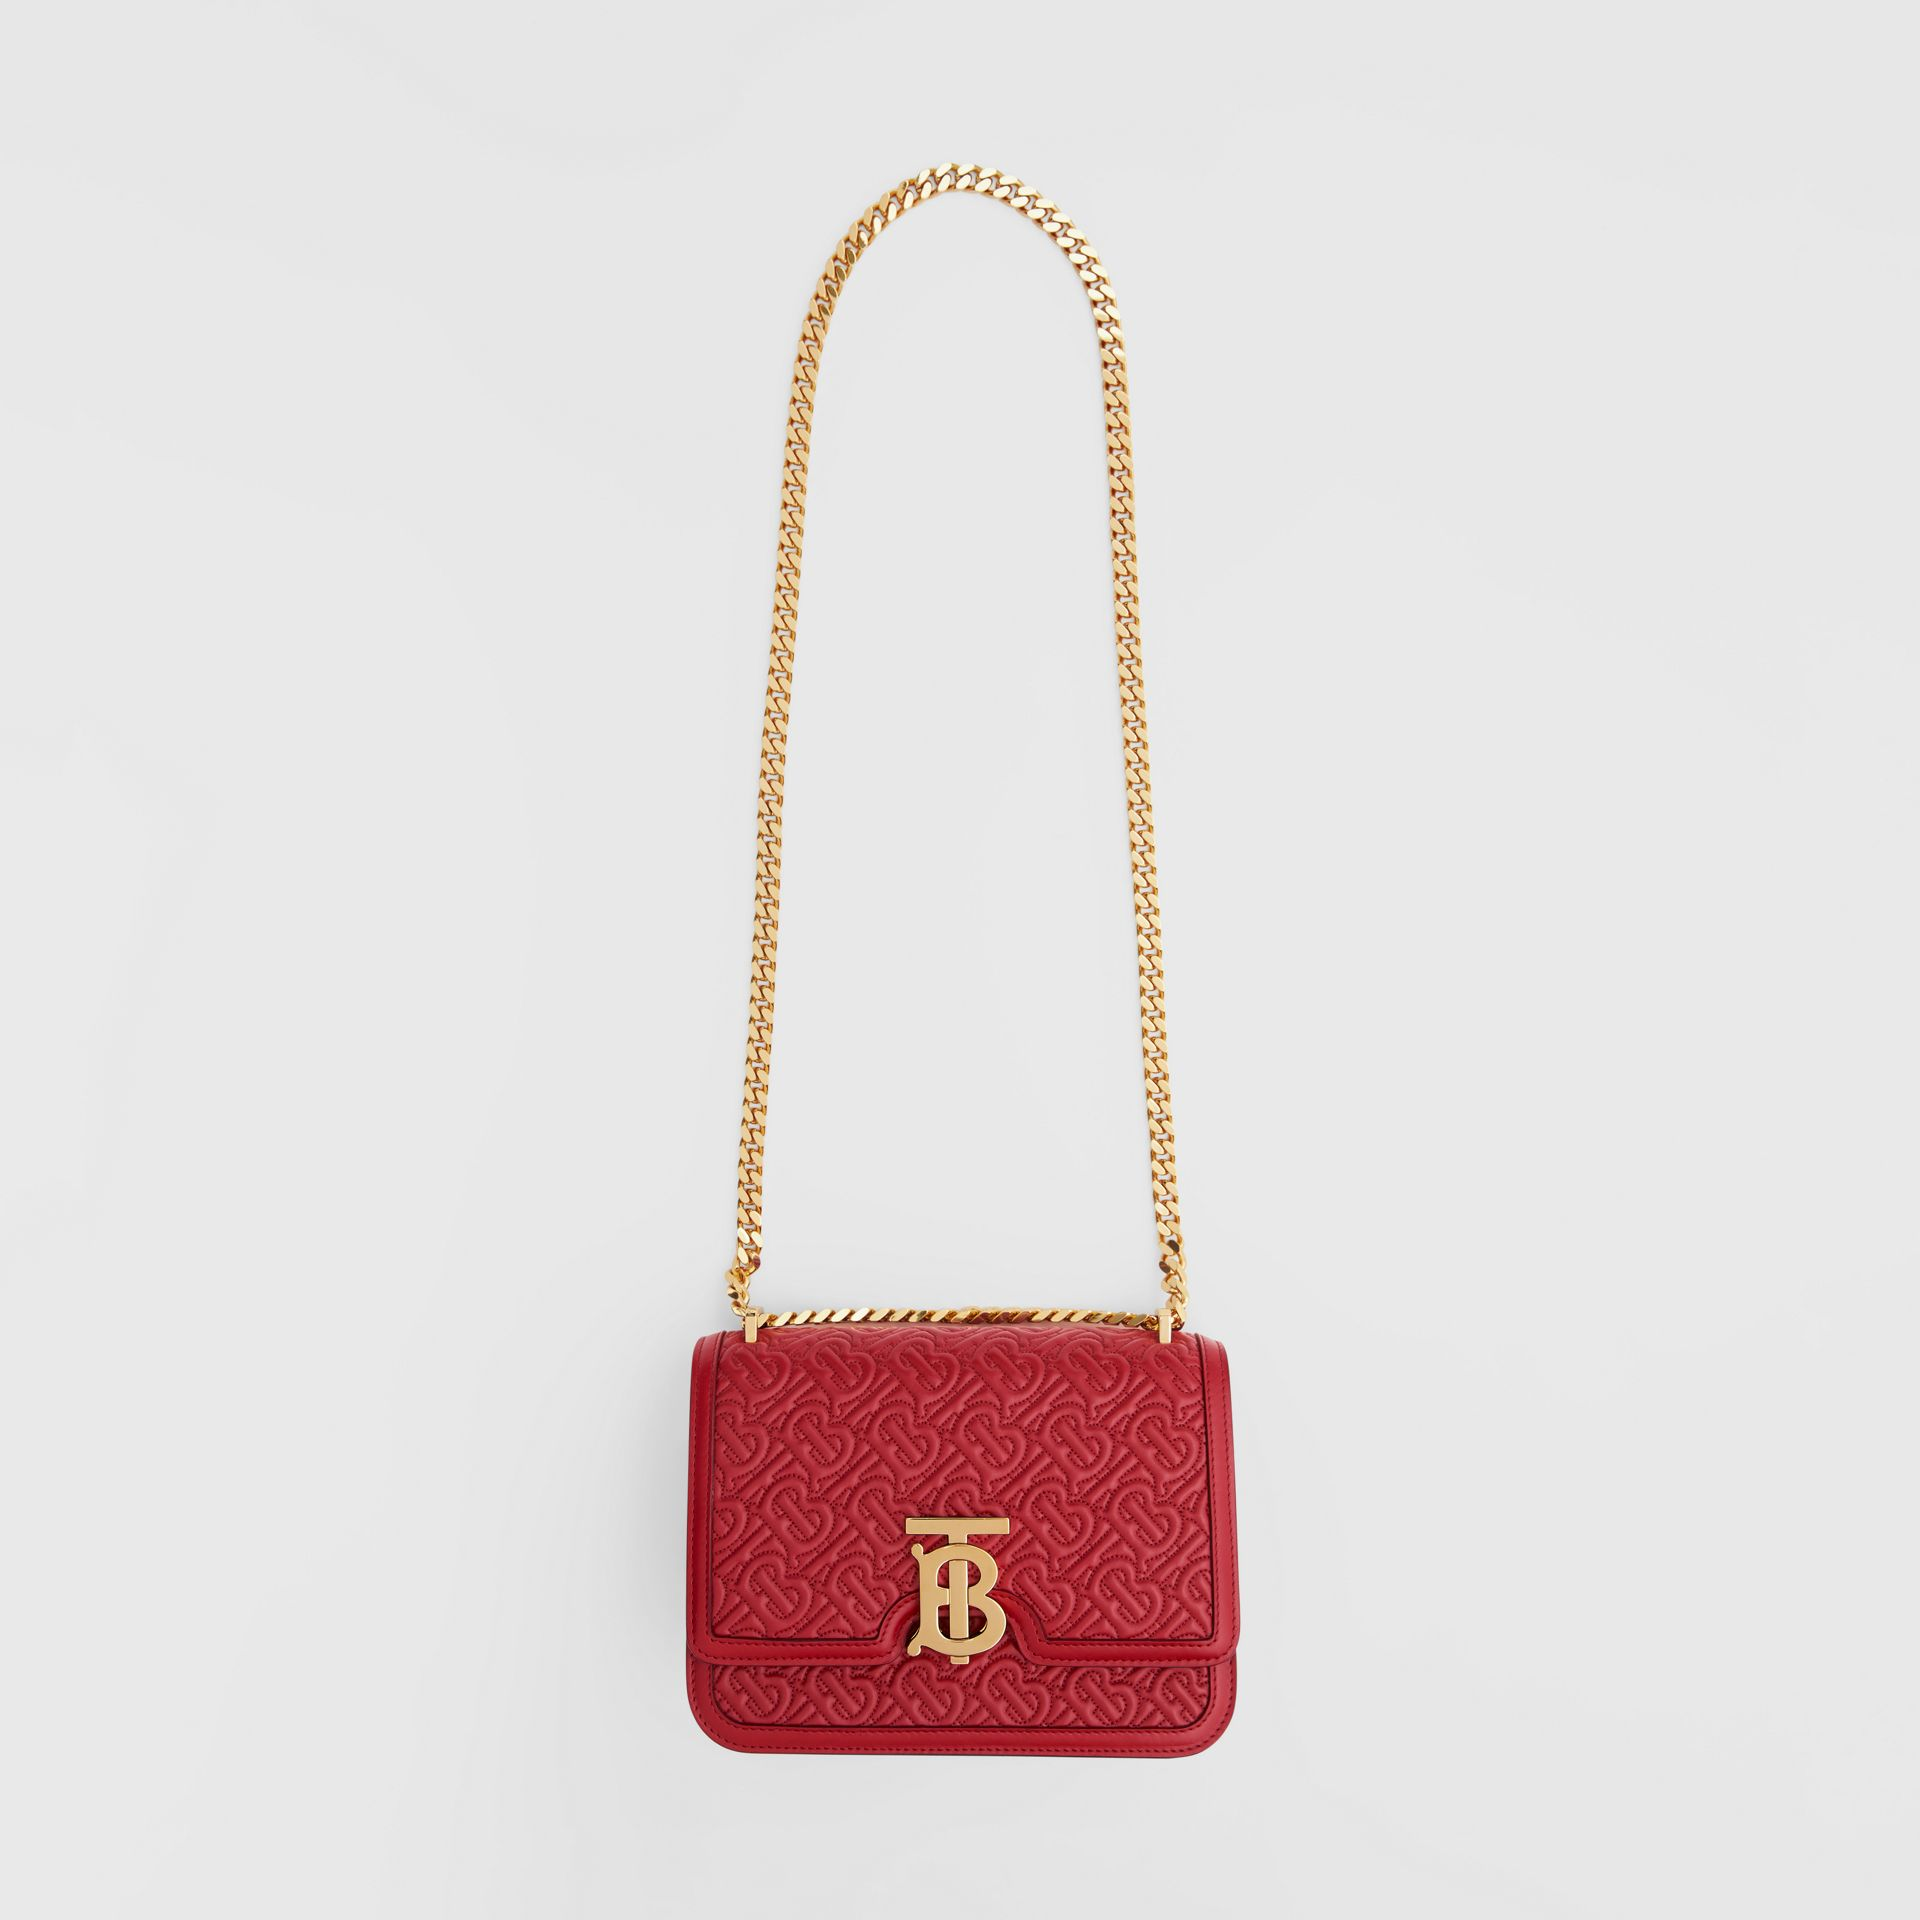 Small Quilted Monogram Lambskin TB Bag in Dark Carmine - Women | Burberry - gallery image 3